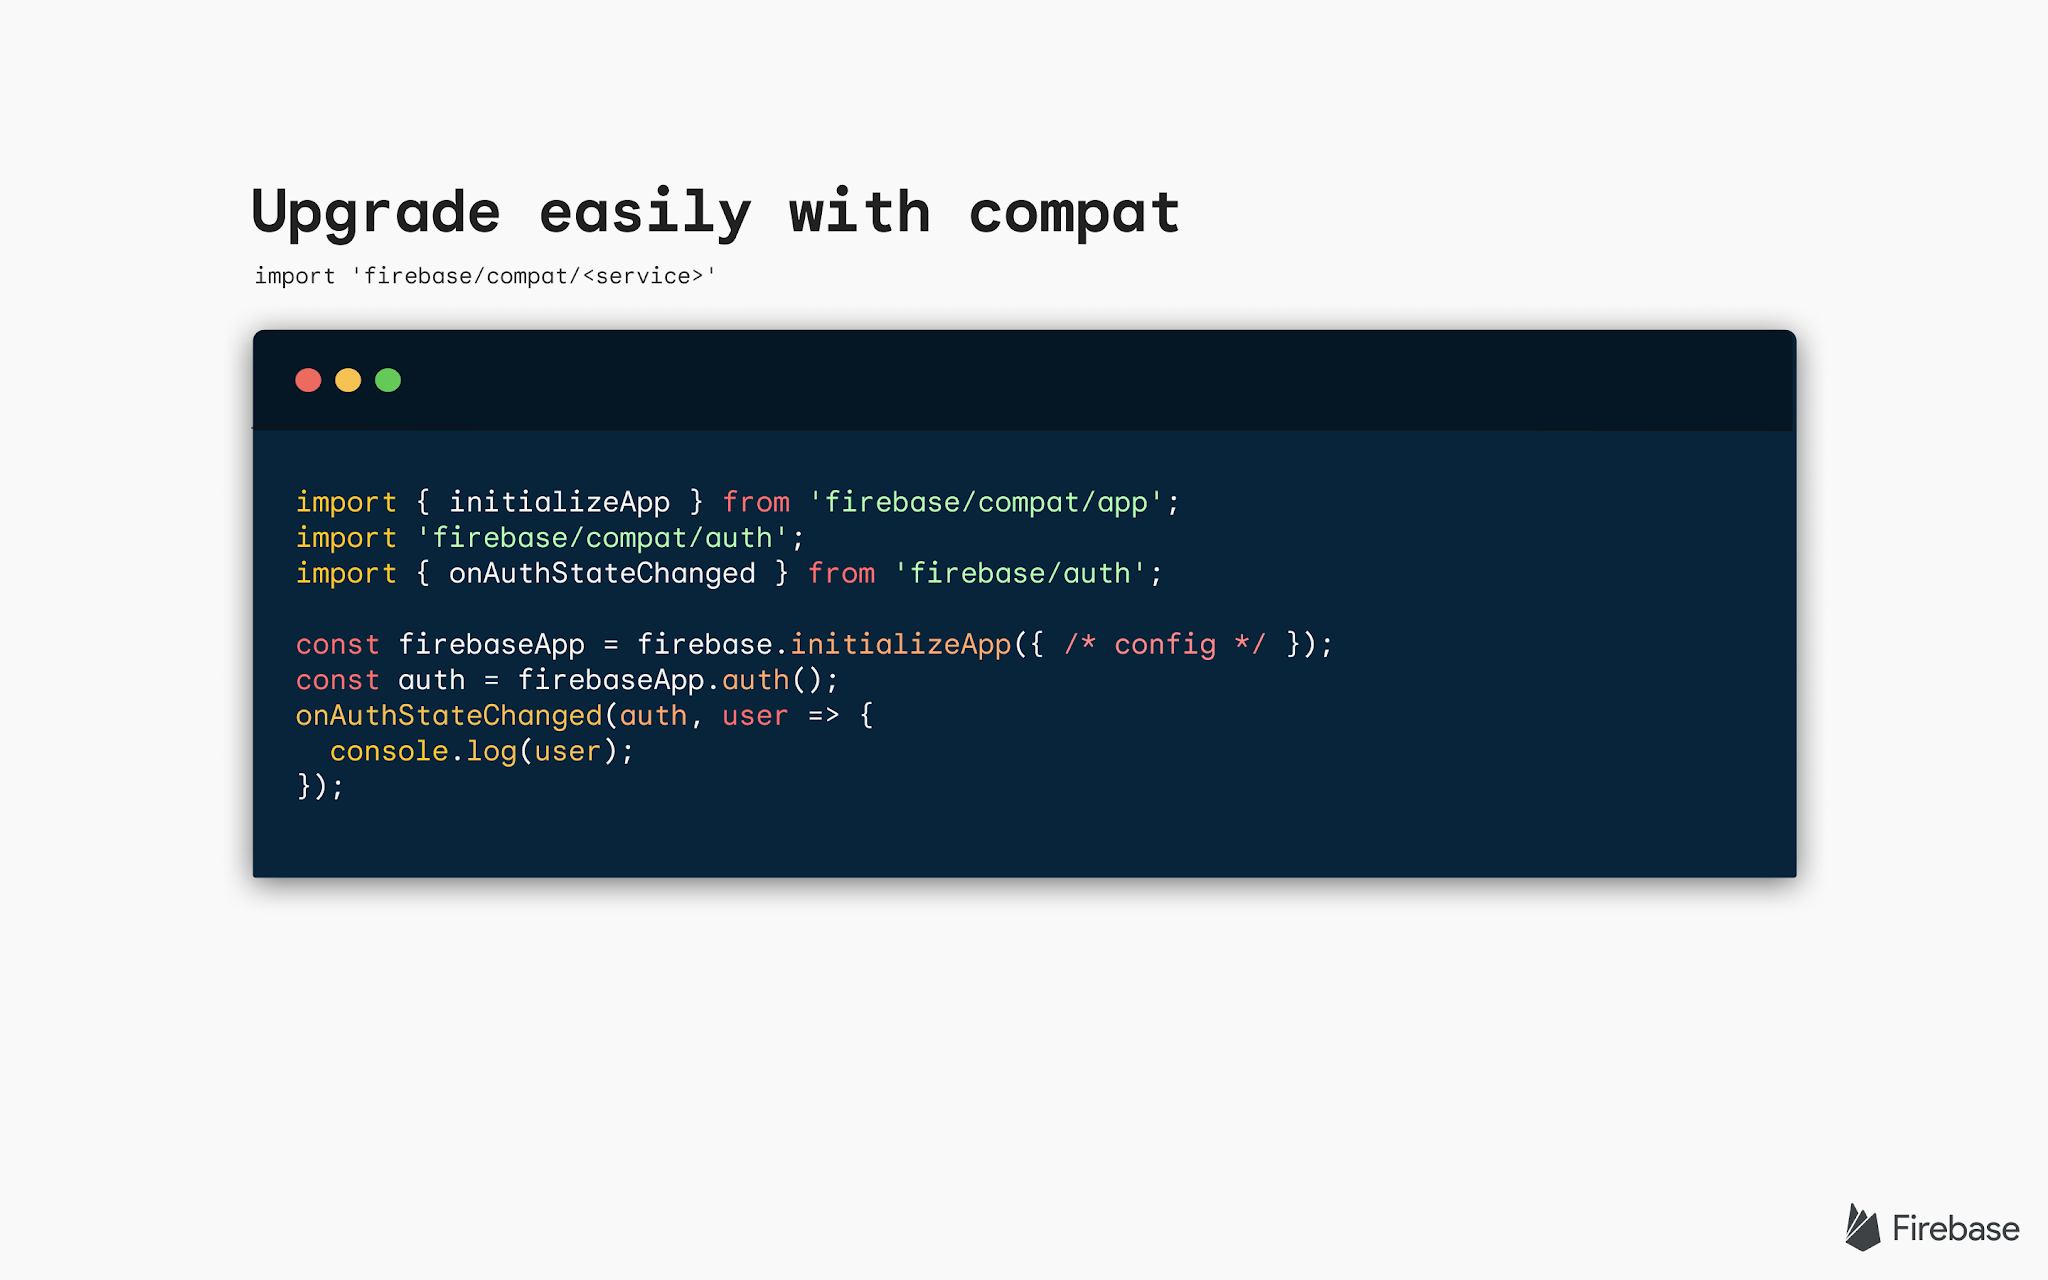 Image of code snippet with text saying Upgrade easily with compat